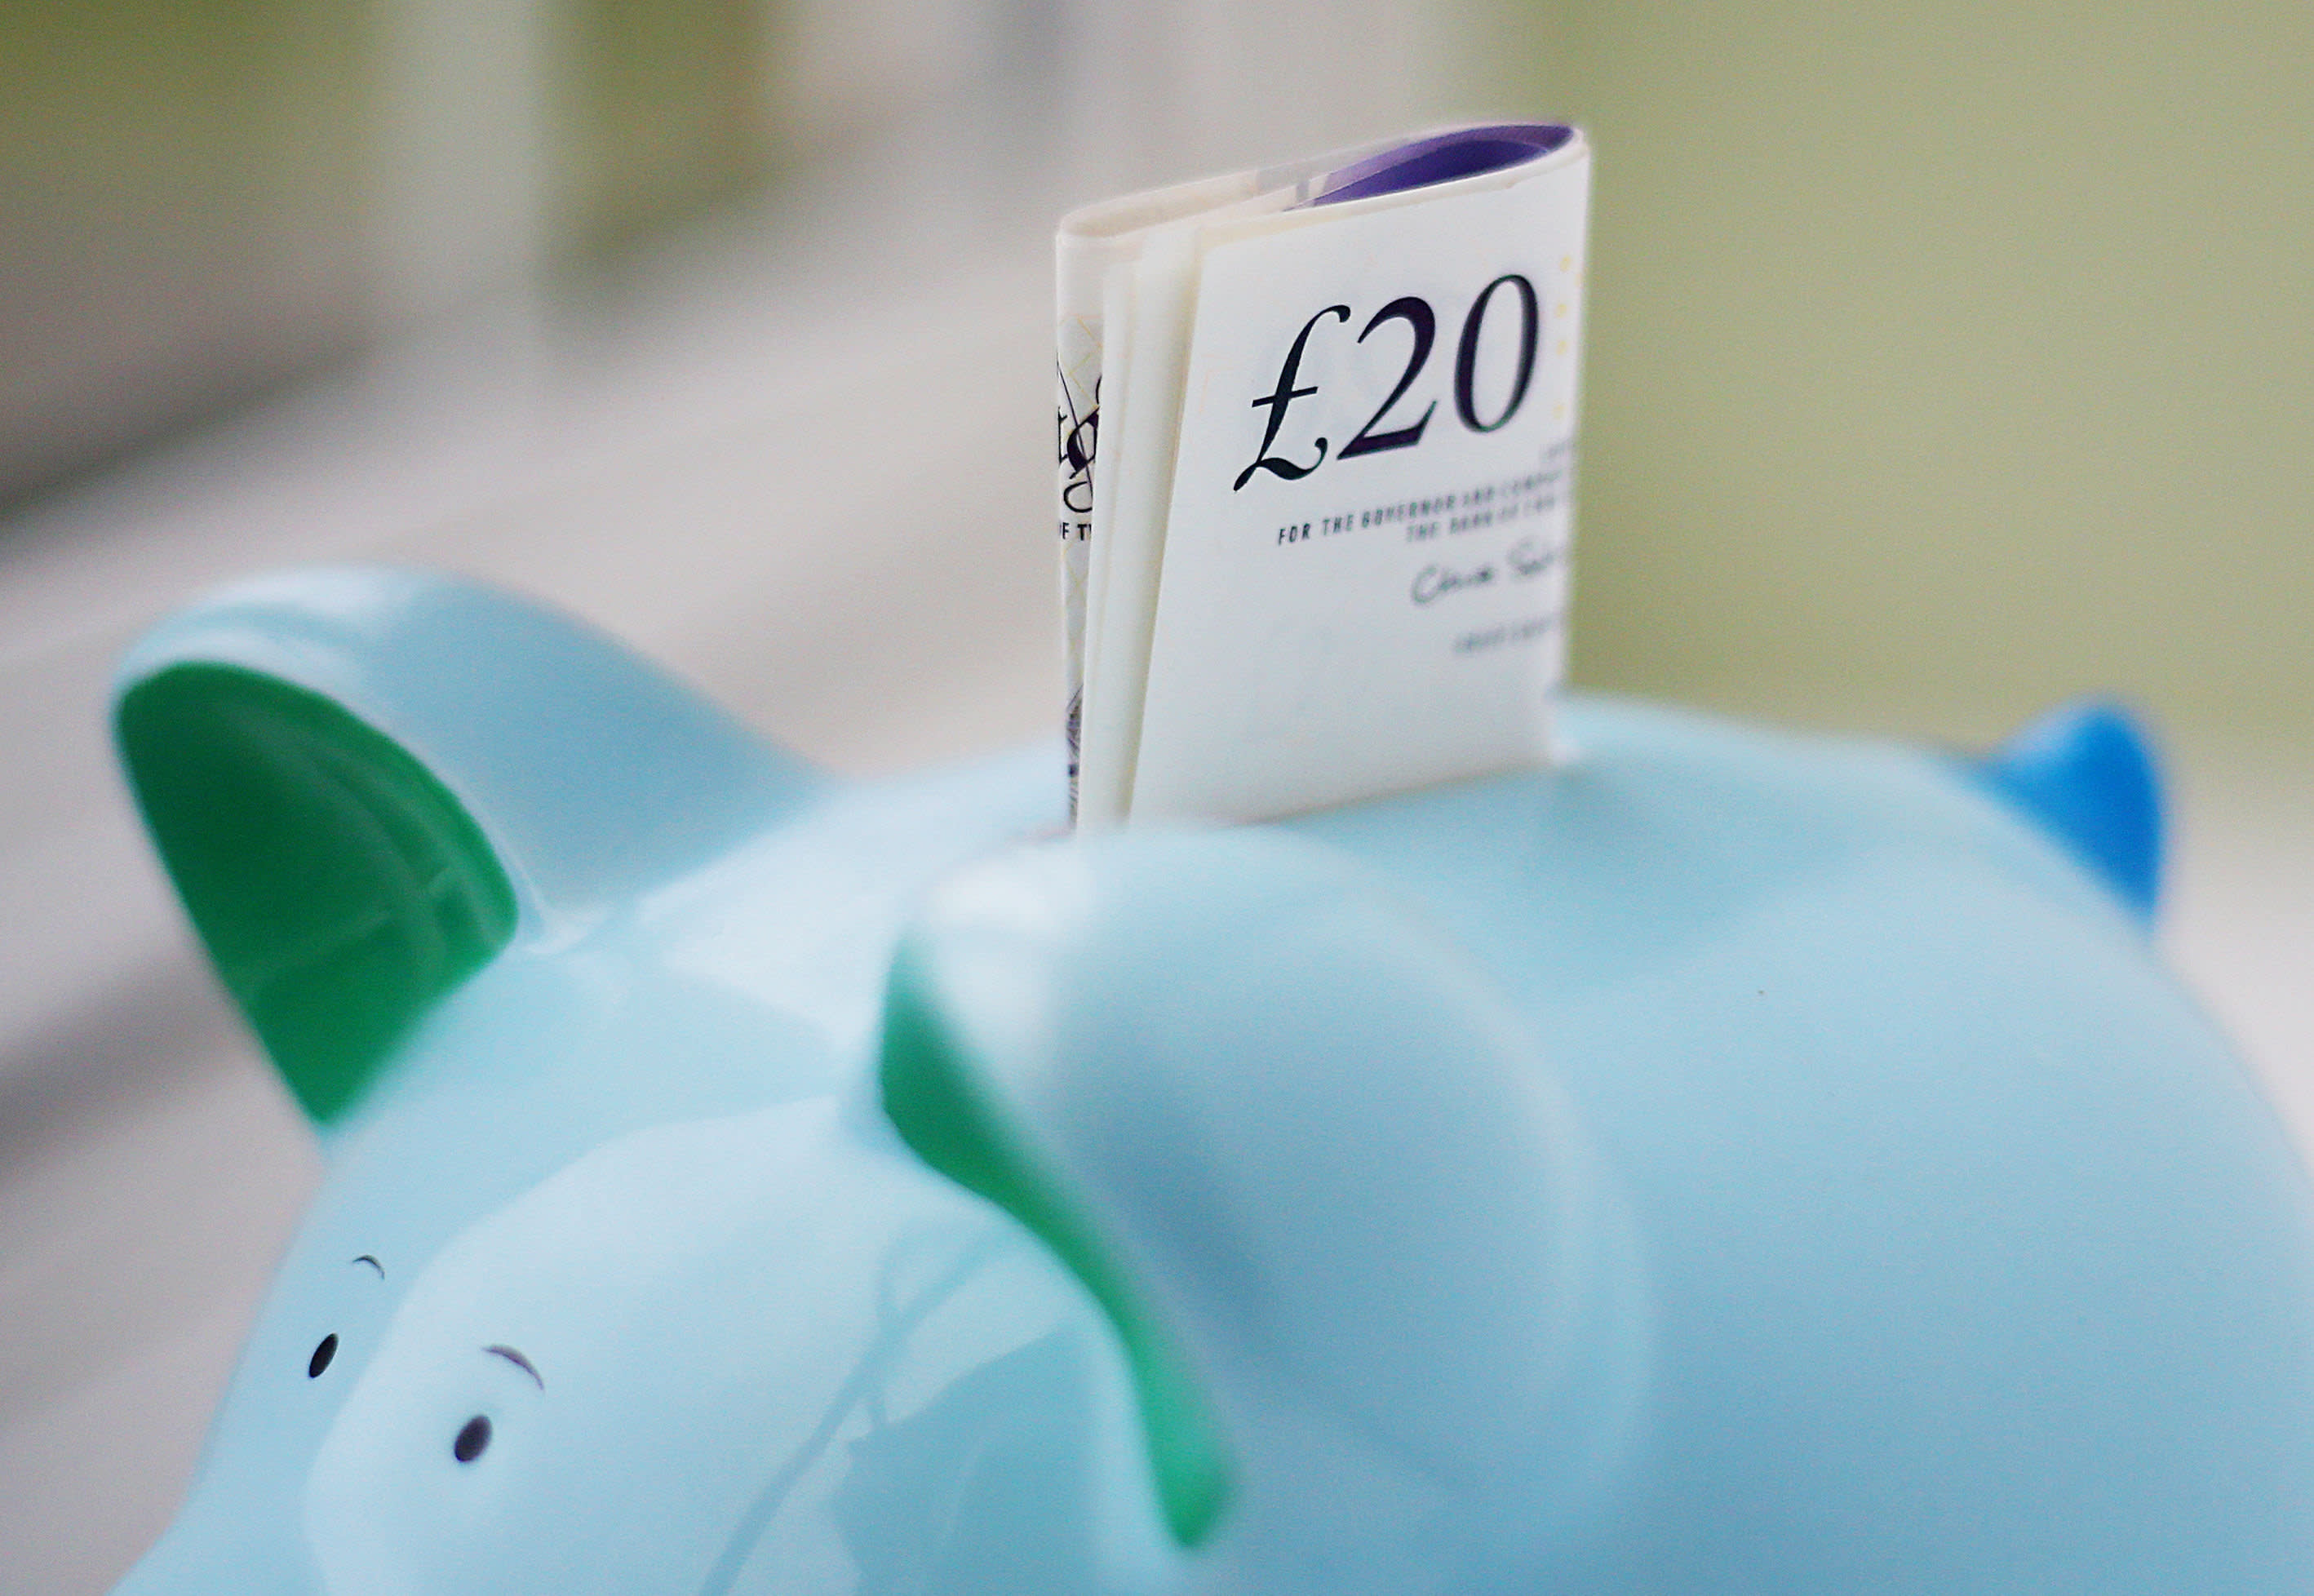 FCA finds third of adults need advice but don't access it